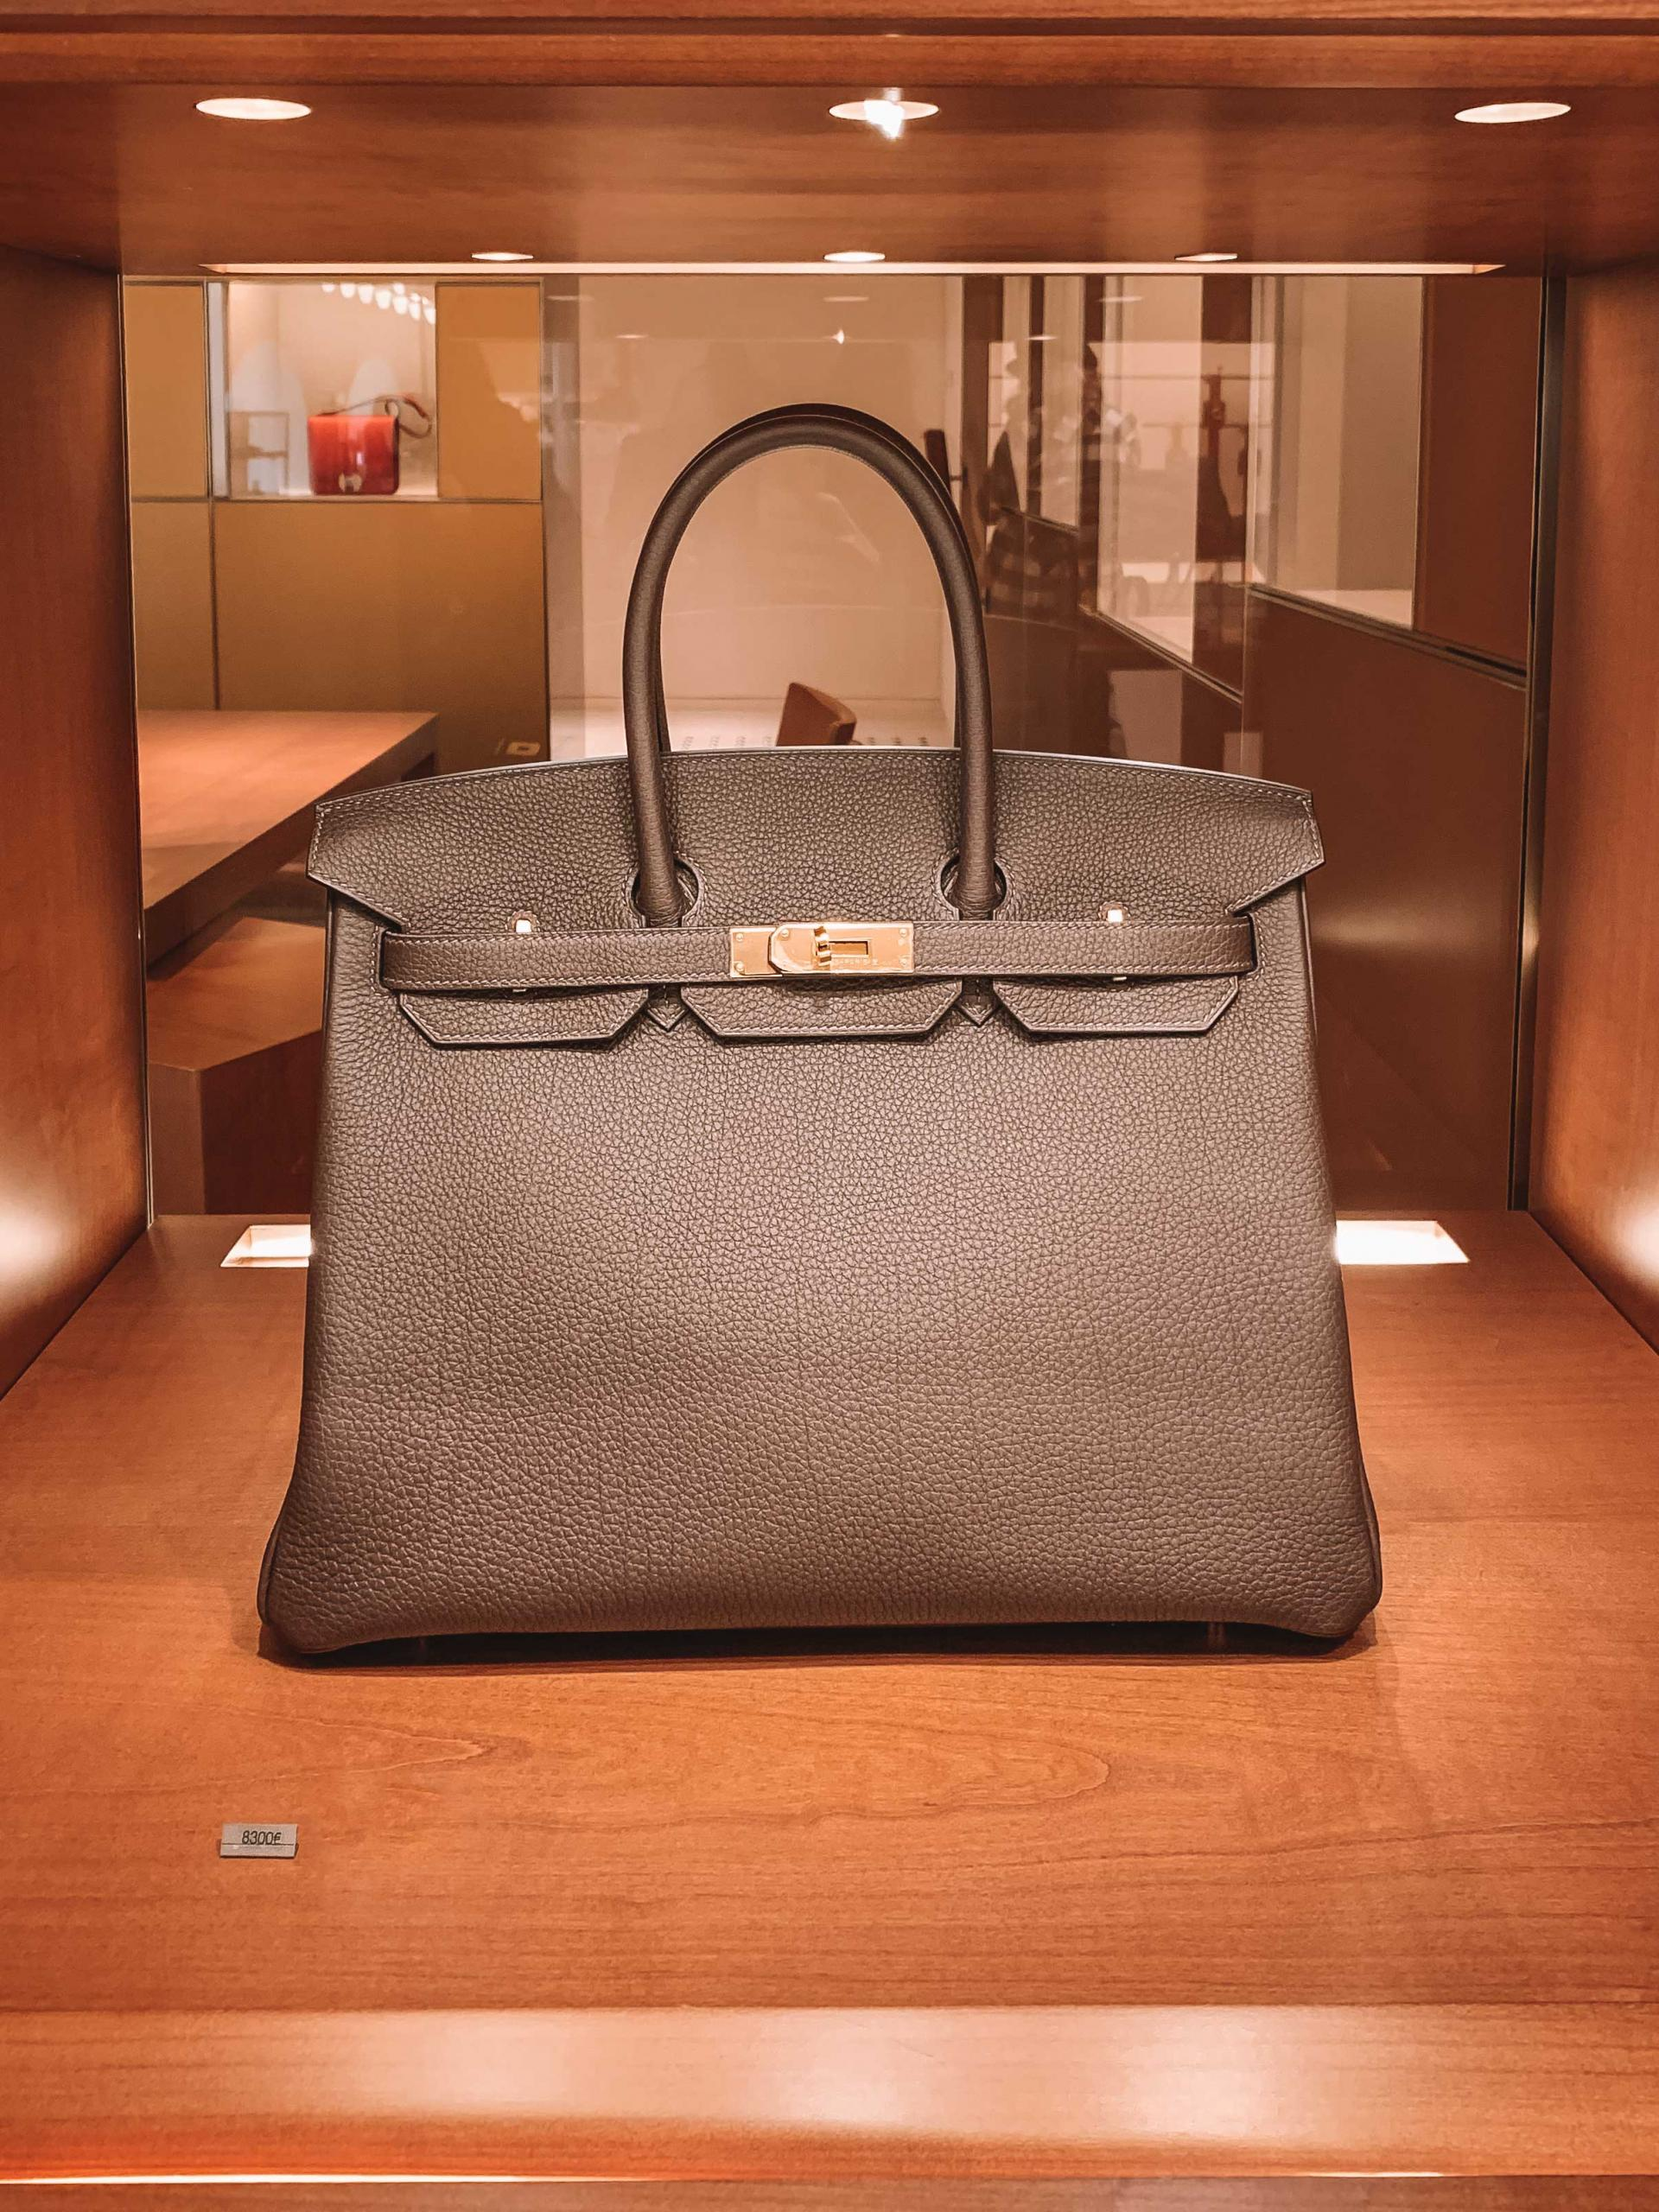 Birkin size 35 togo leather